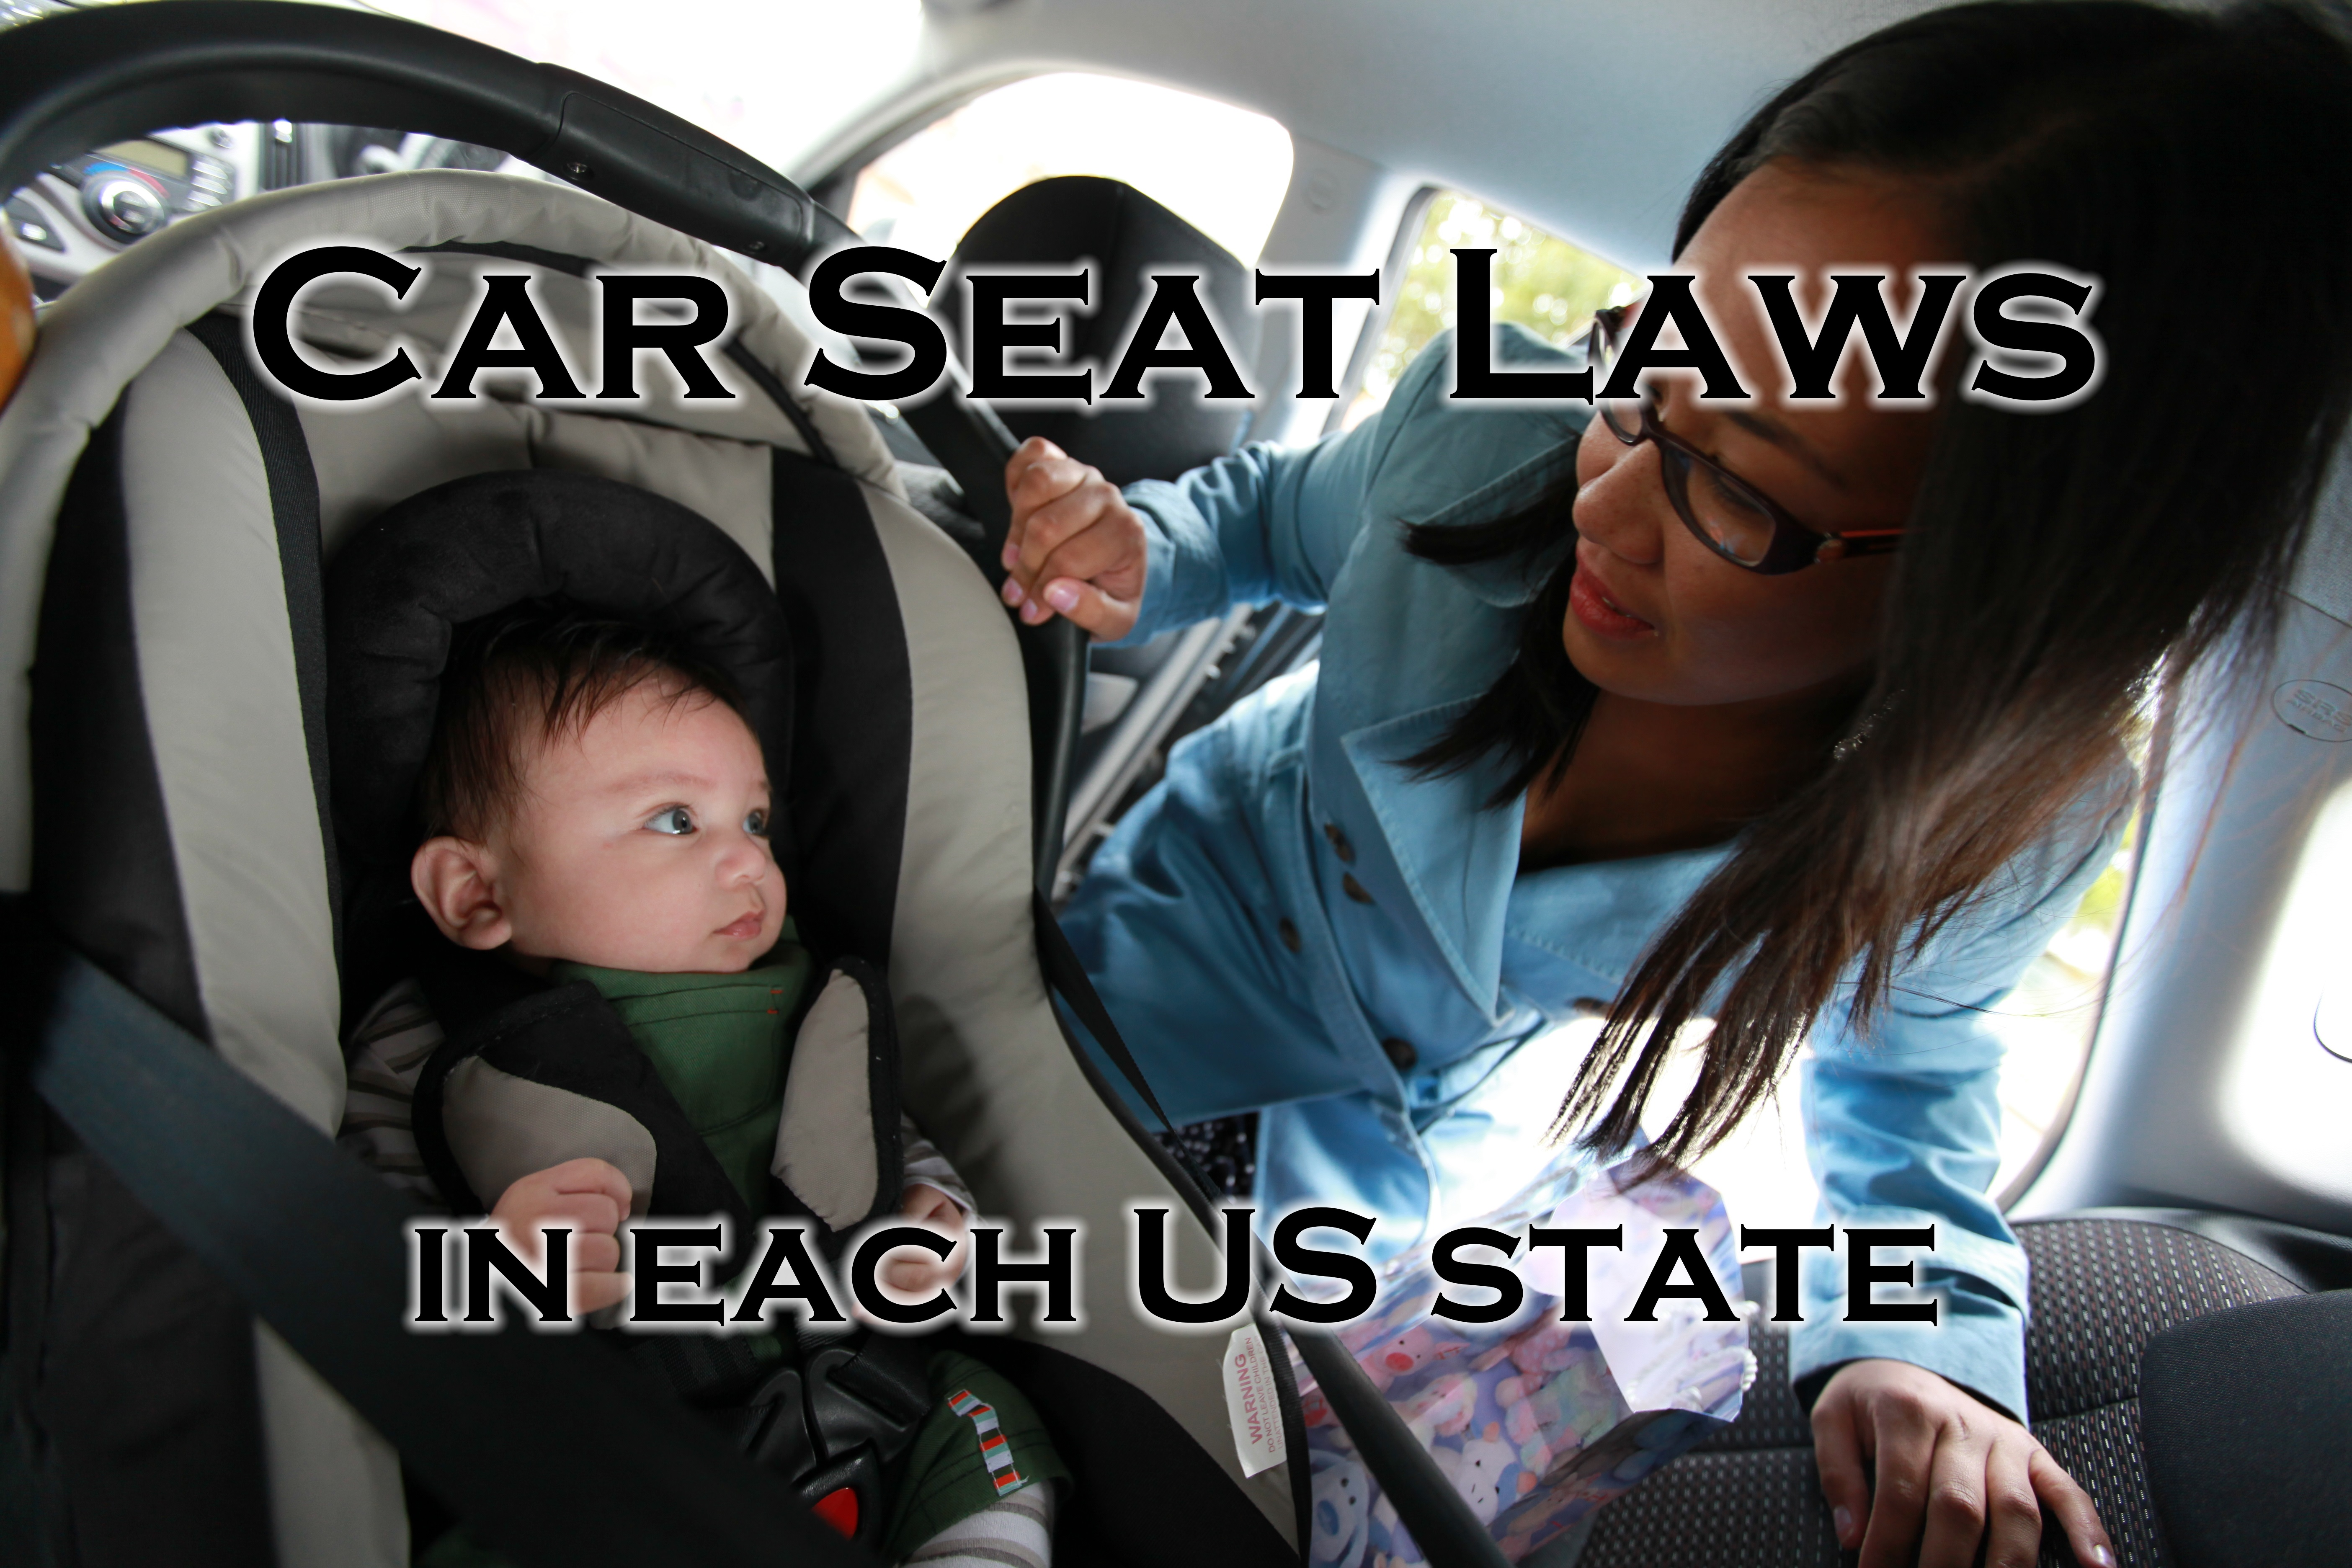 Wv Car Seat Laws >> Car Seat Laws In Each Us State Anne S Travels